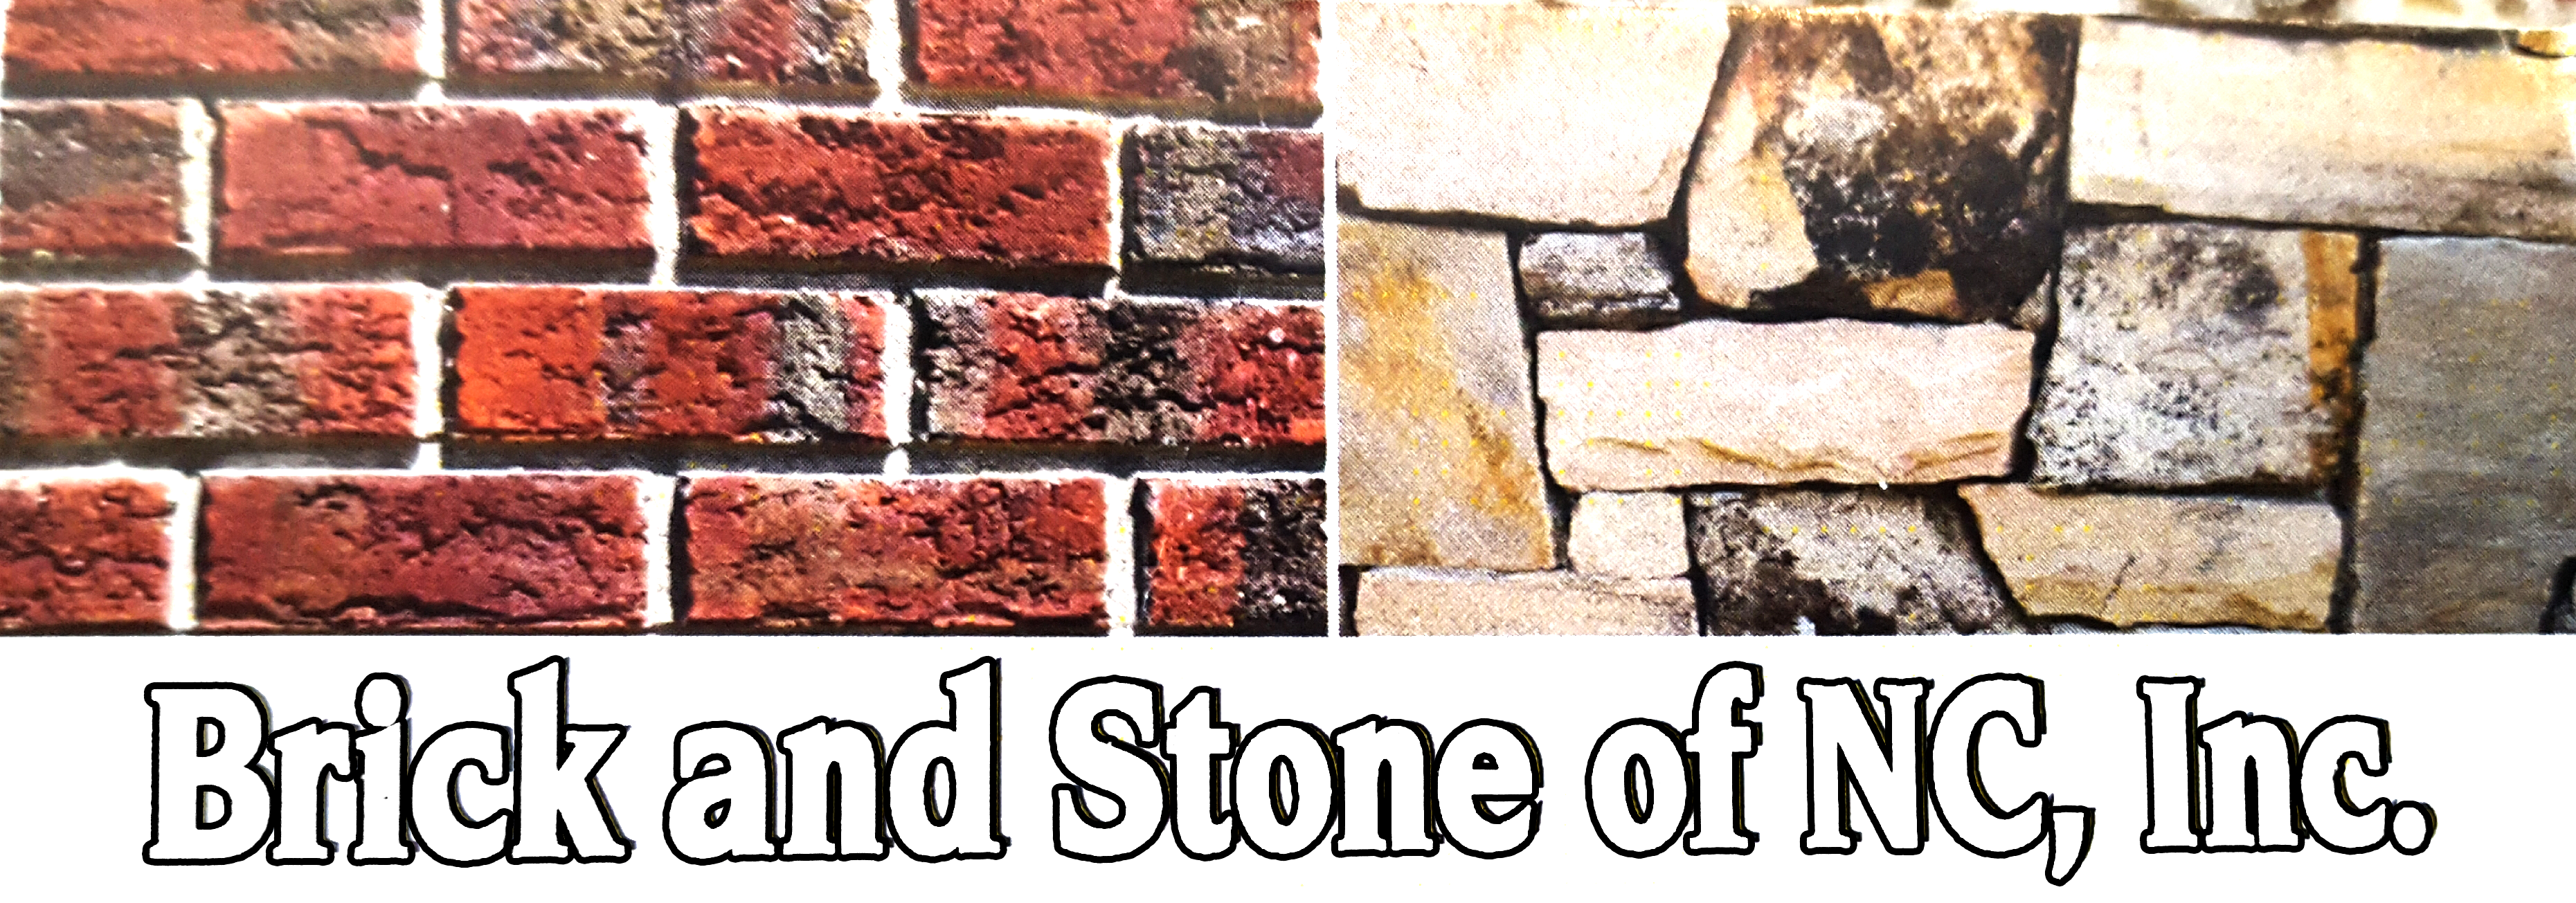 Brick and Stone of NC, Inc Raleigh, NC